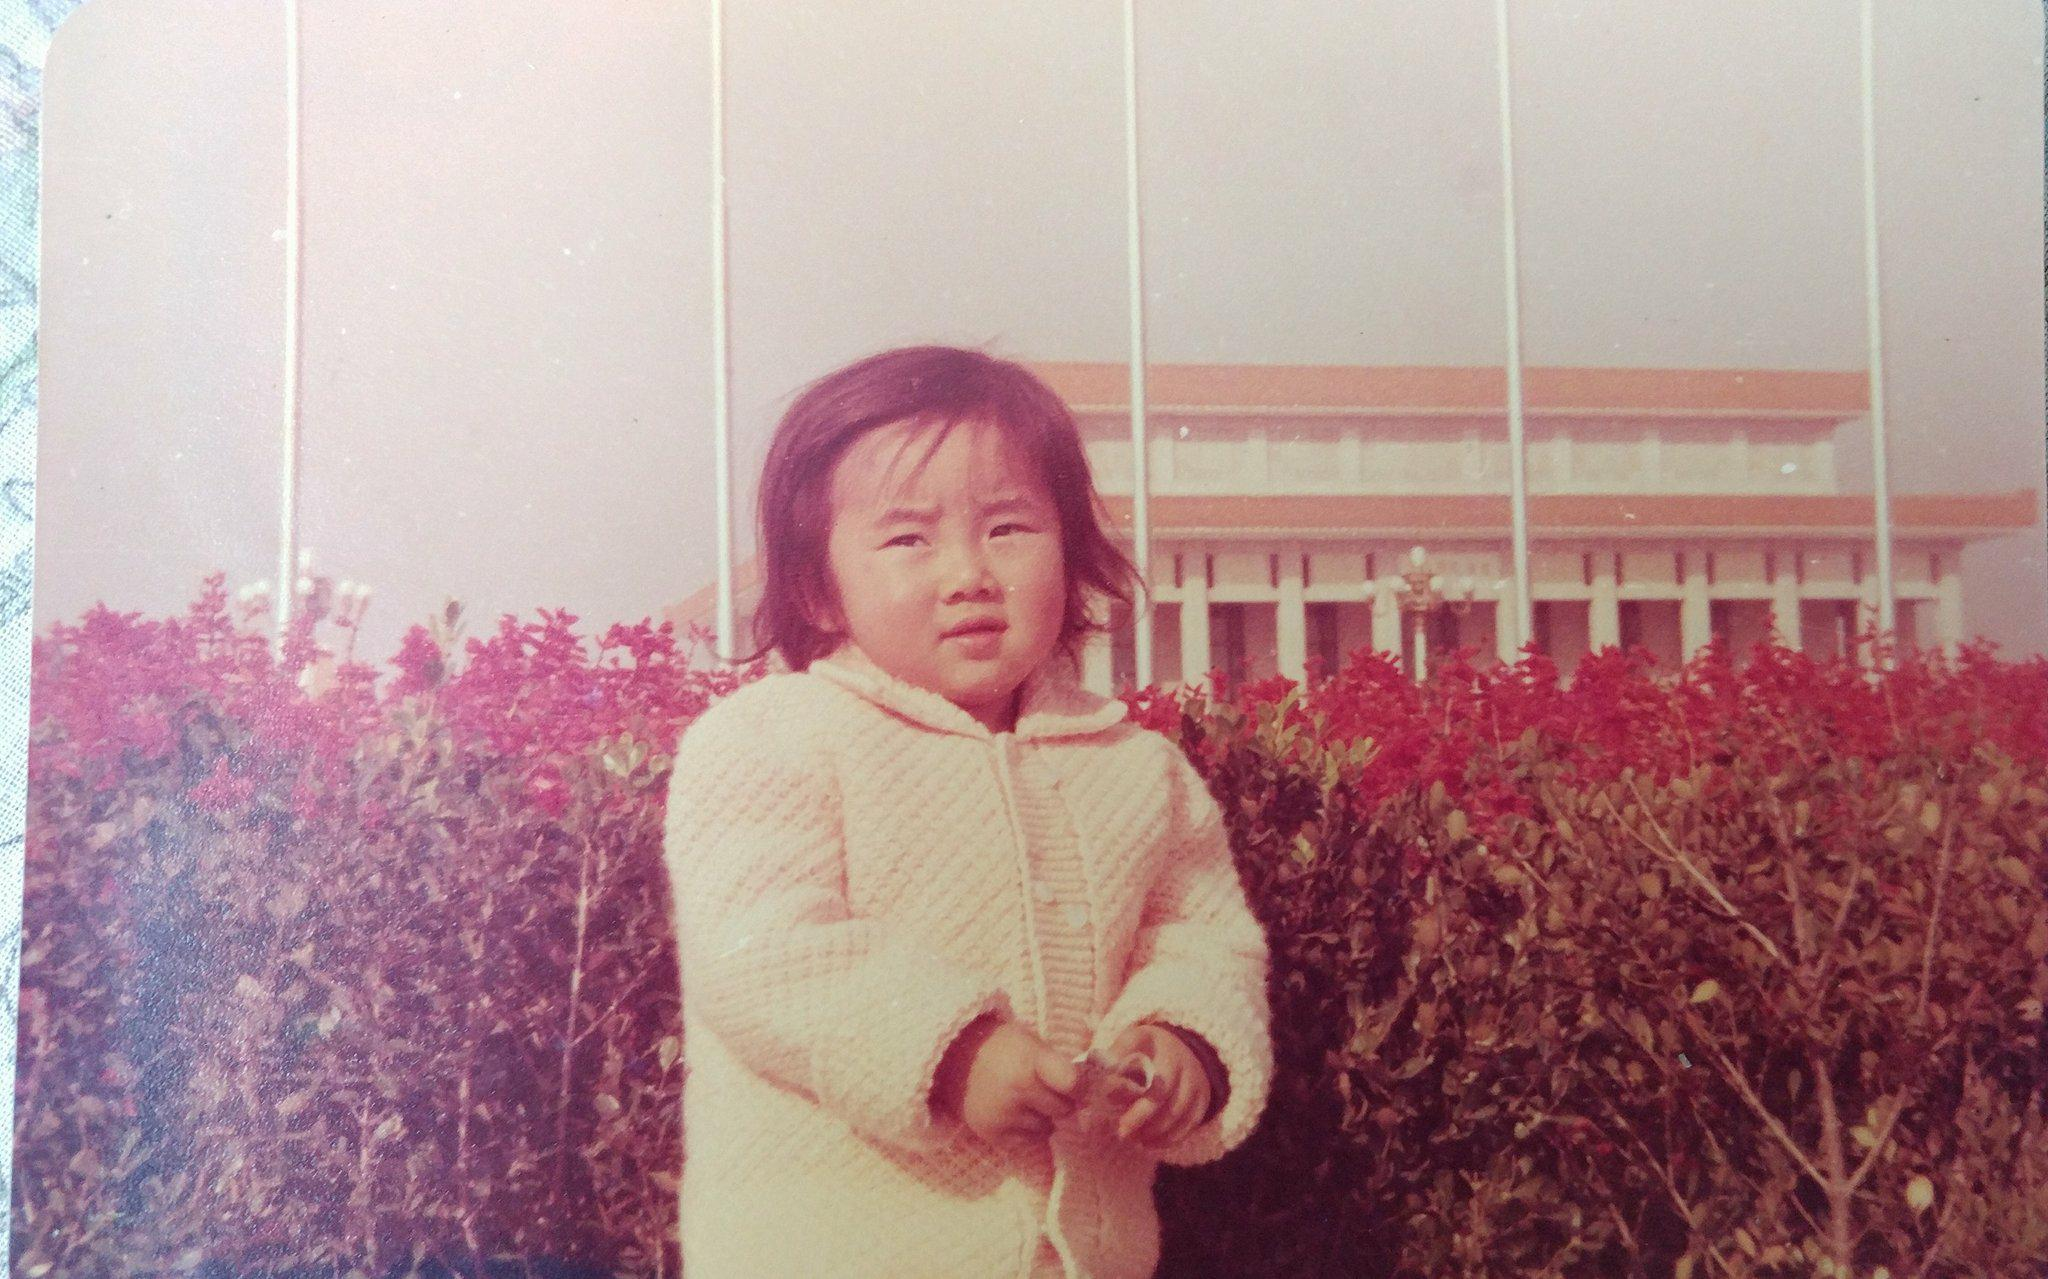 A friend was similarly unhappy when taking a picture in front of the The Chairman Mao Memorial Hall at the Tiananmen Square. 一位朋友小時候在天安門的「「毛主席紀念館」前照相時,也是一臉的痛苦樣。(Photo credit 圖片來源: Janet San )